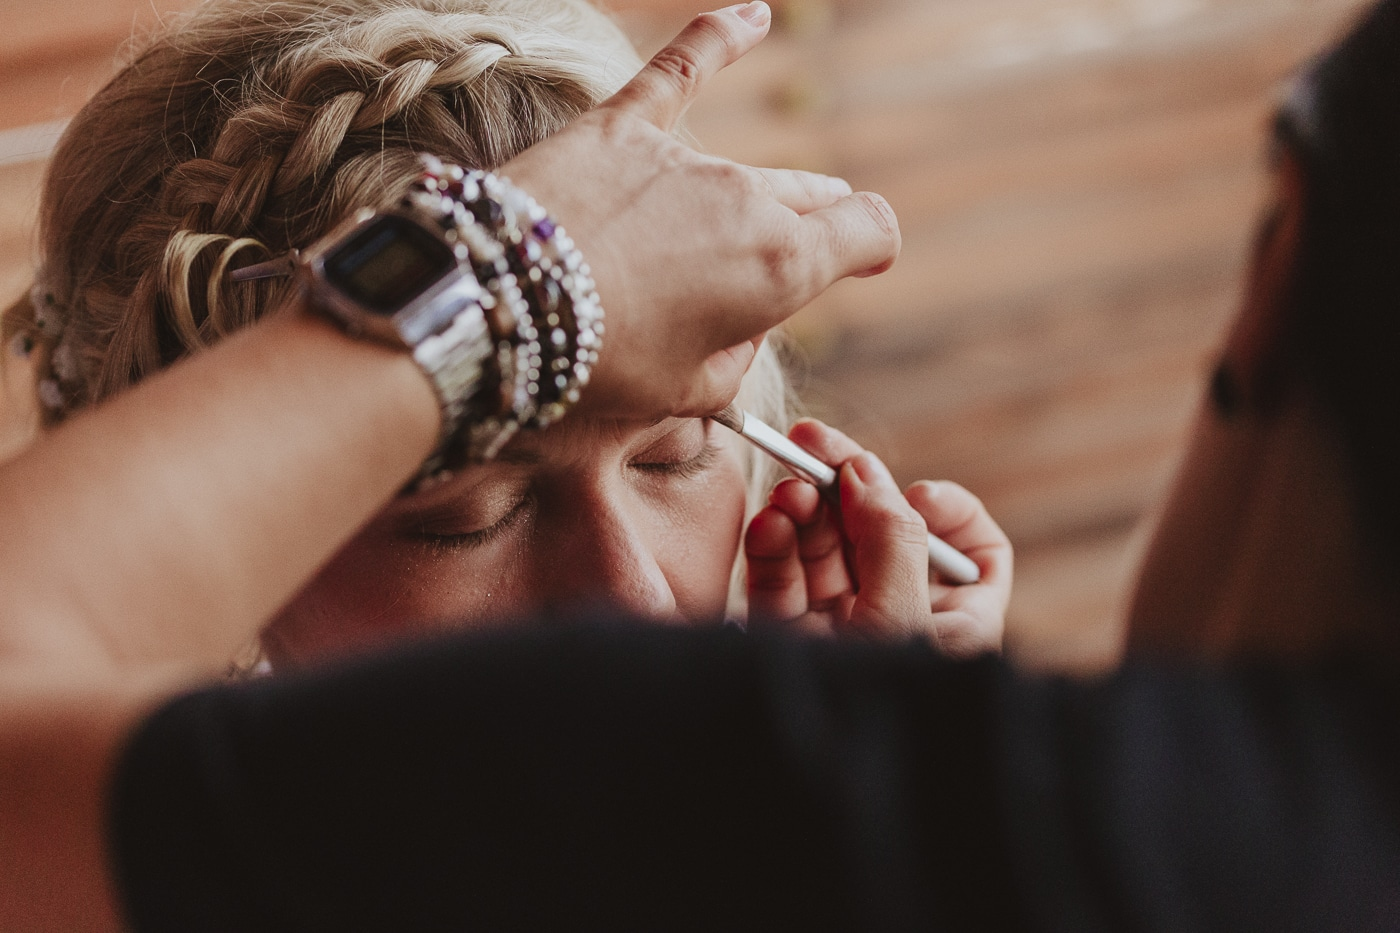 Bride getting makeup done by woman with bracelets and watch on wrist